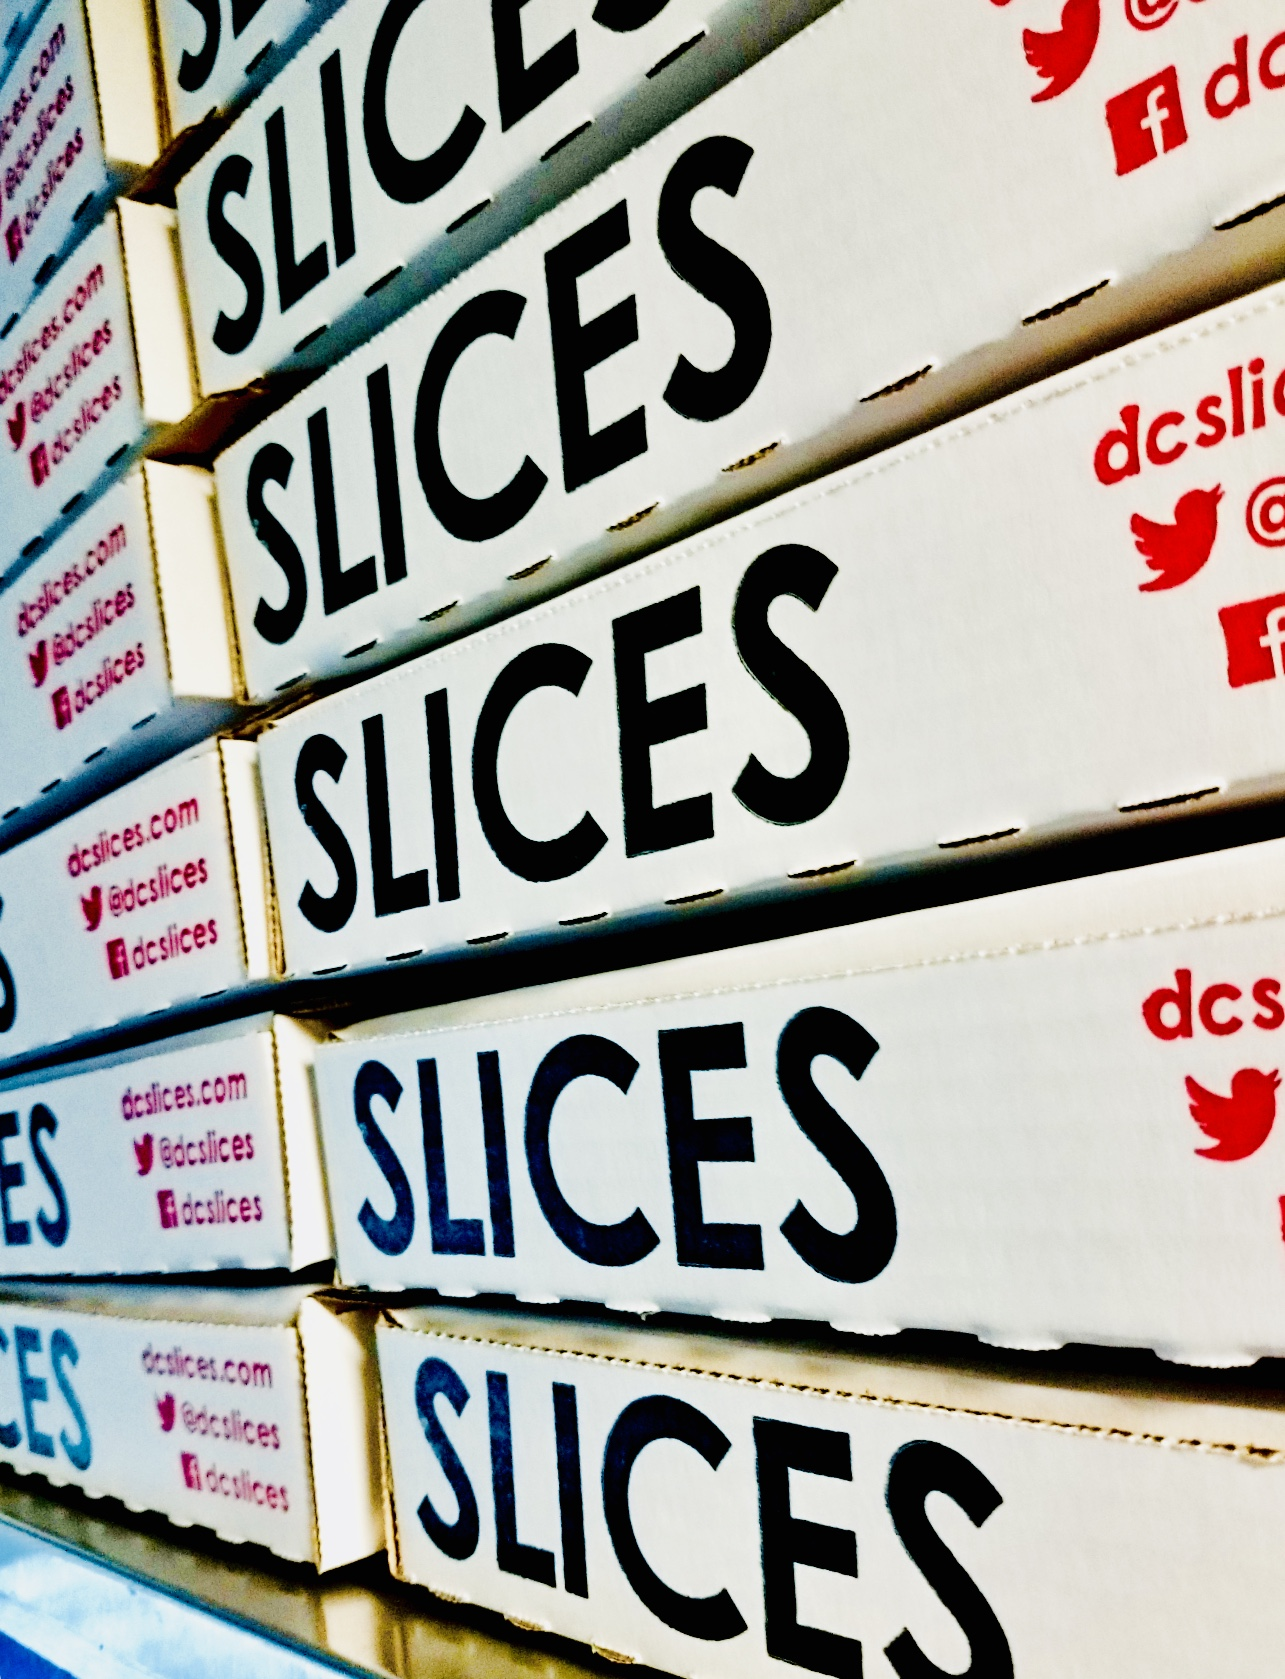 DC Slices Boxes.jpg